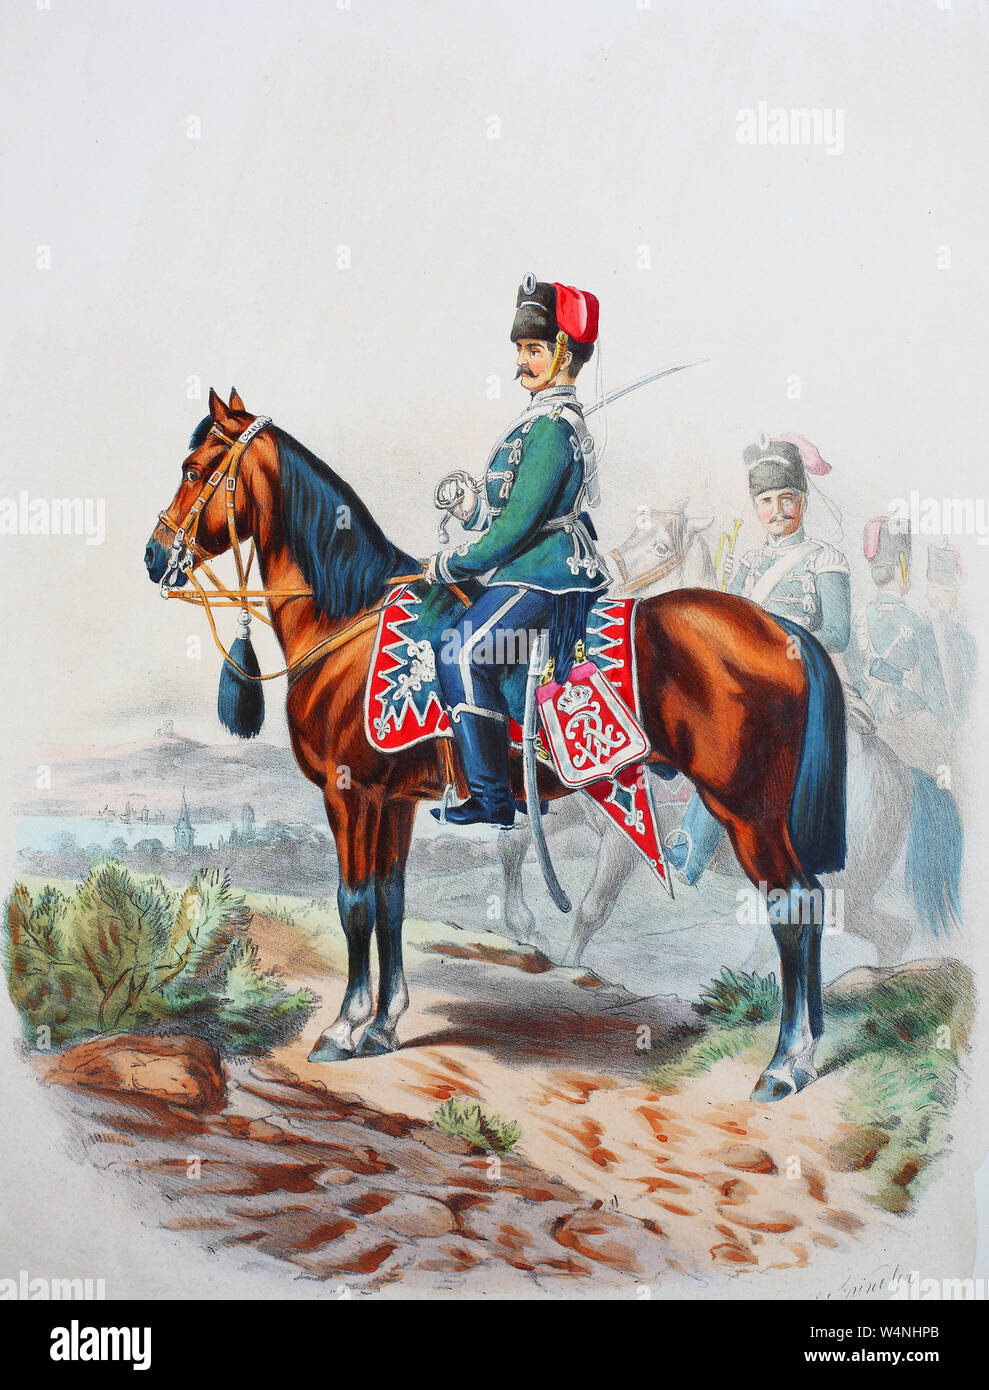 Royal Prussian Army, Guards Corps, Preußens Heer, preussische Garde, Westfälisches Husaren Regiment No.11, Offizier, Trompeter, Digital improved reproduction of an illustration from the 19th century Stock Photo